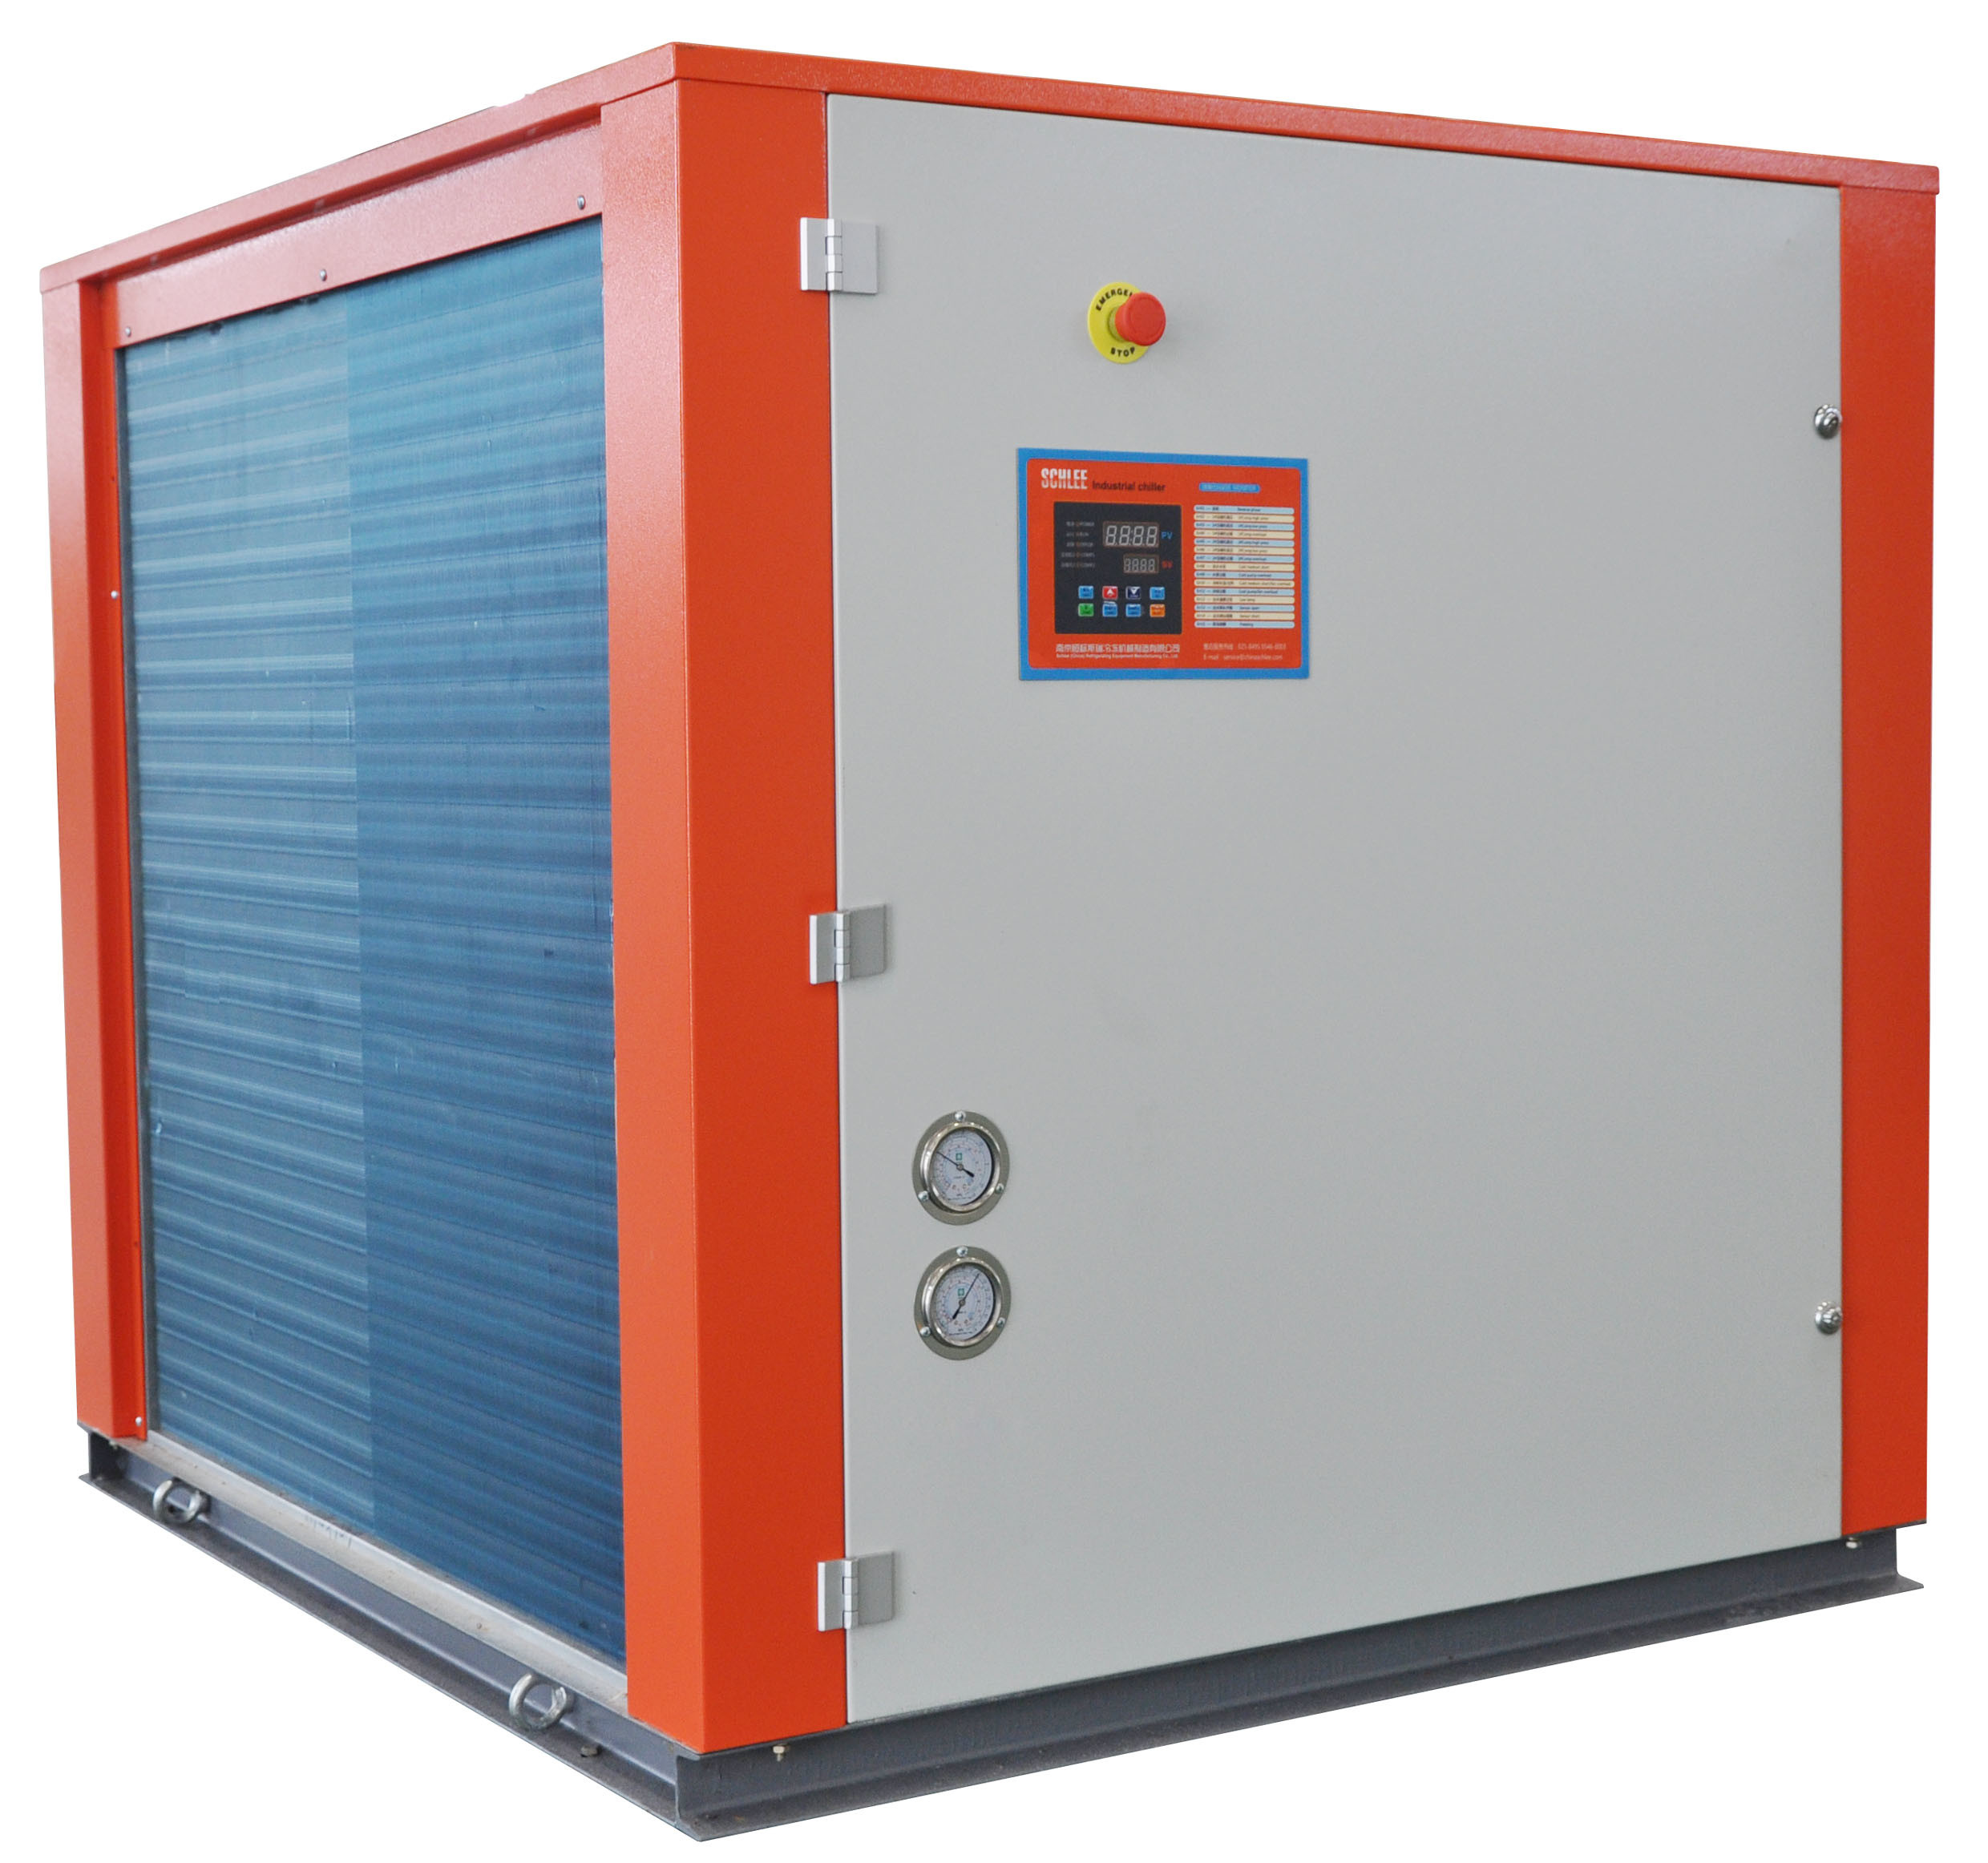 10HP Industrial Air Cooled Water Chillers for Beer Fermentation Tank